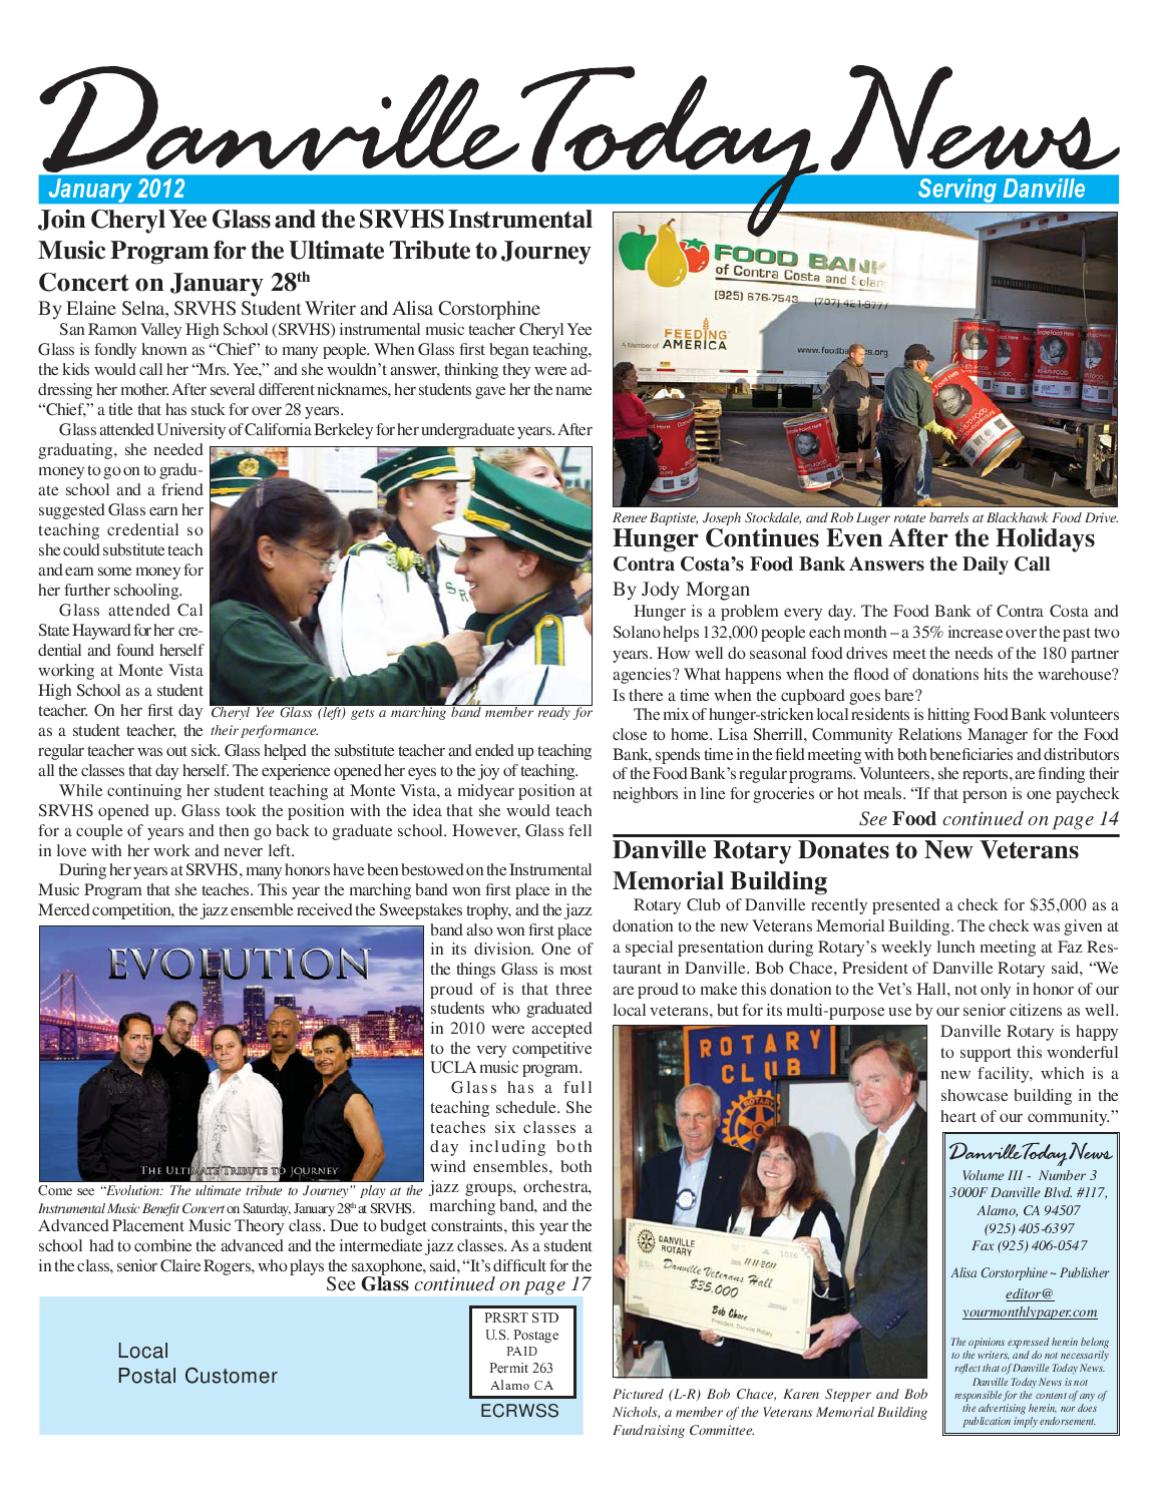 Danville Today News, January 2012 by The Editors, Inc - issuu